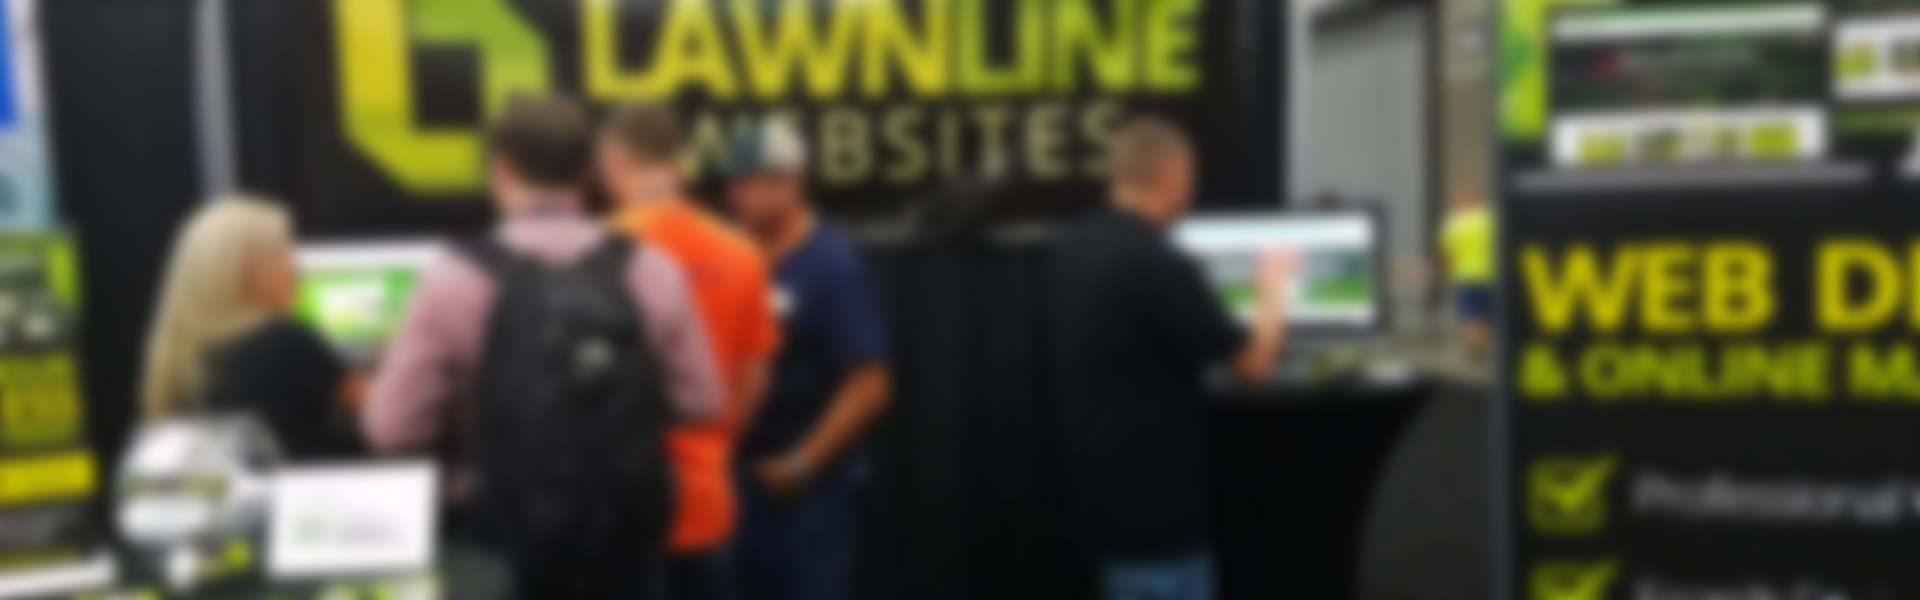 About Lawnline Websites